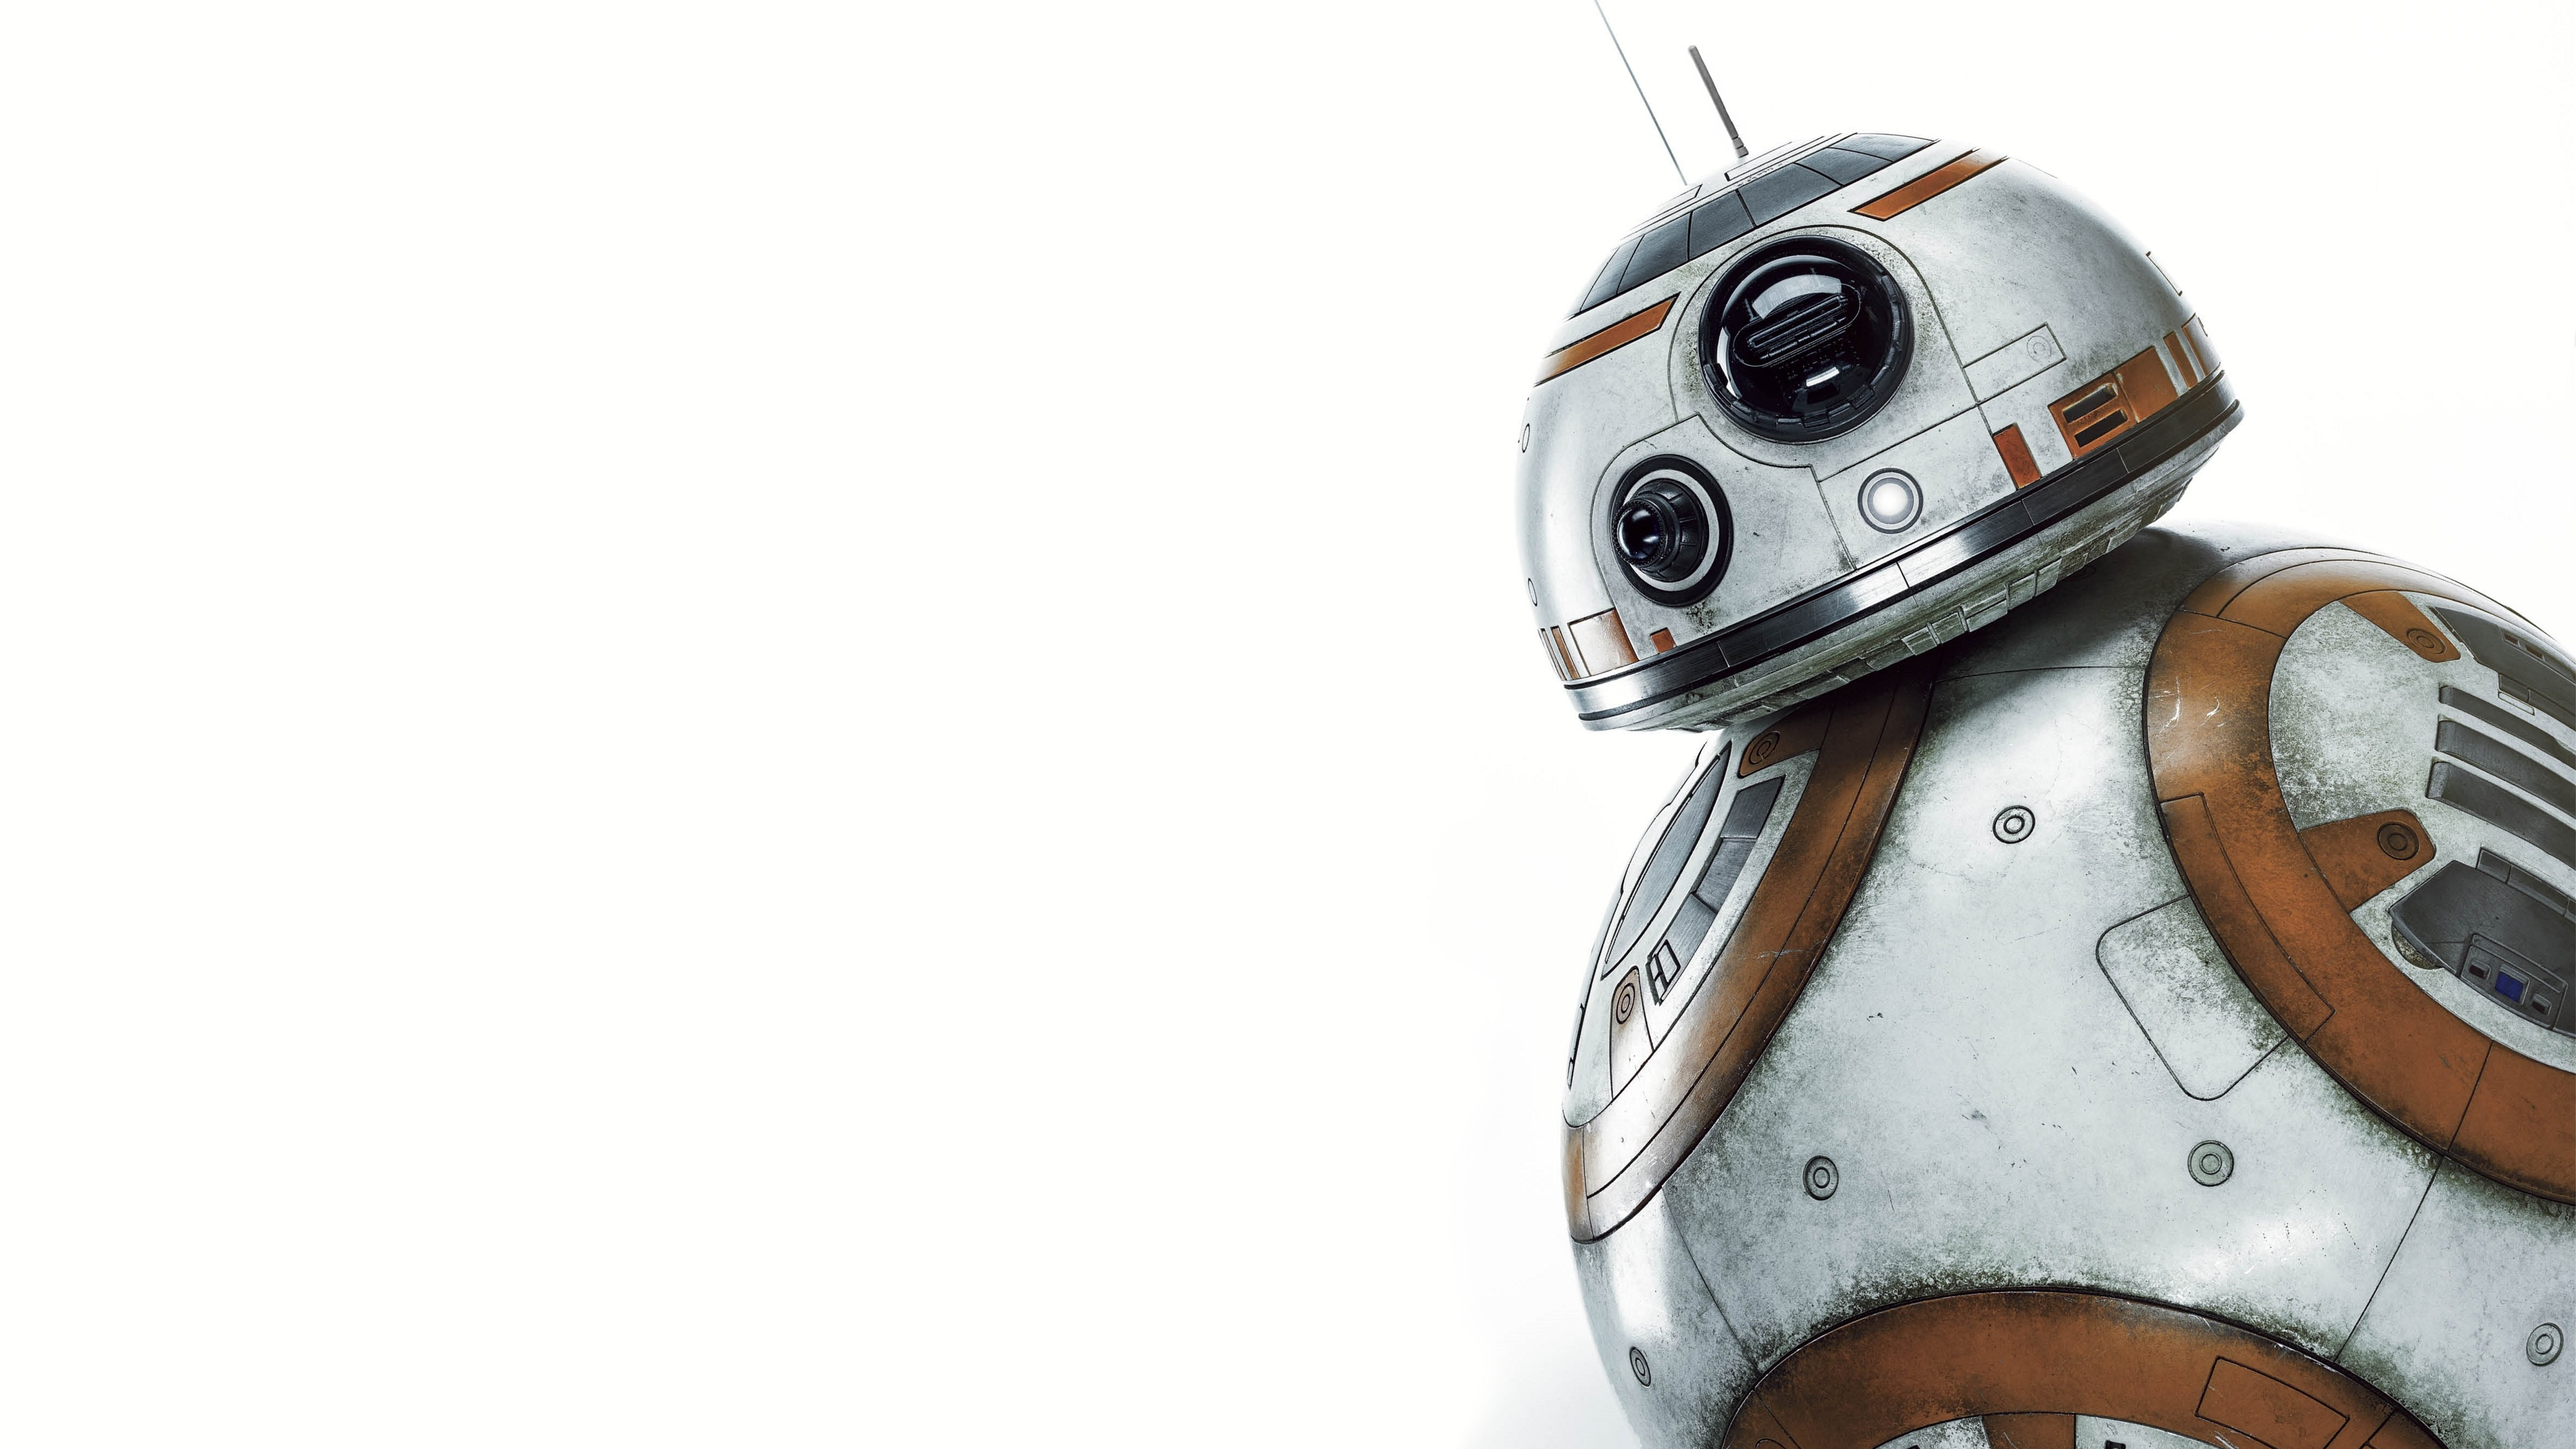 Star Wars BB 8 Wallpapers HD Desktop and Mobile Backgrounds 5120x2880